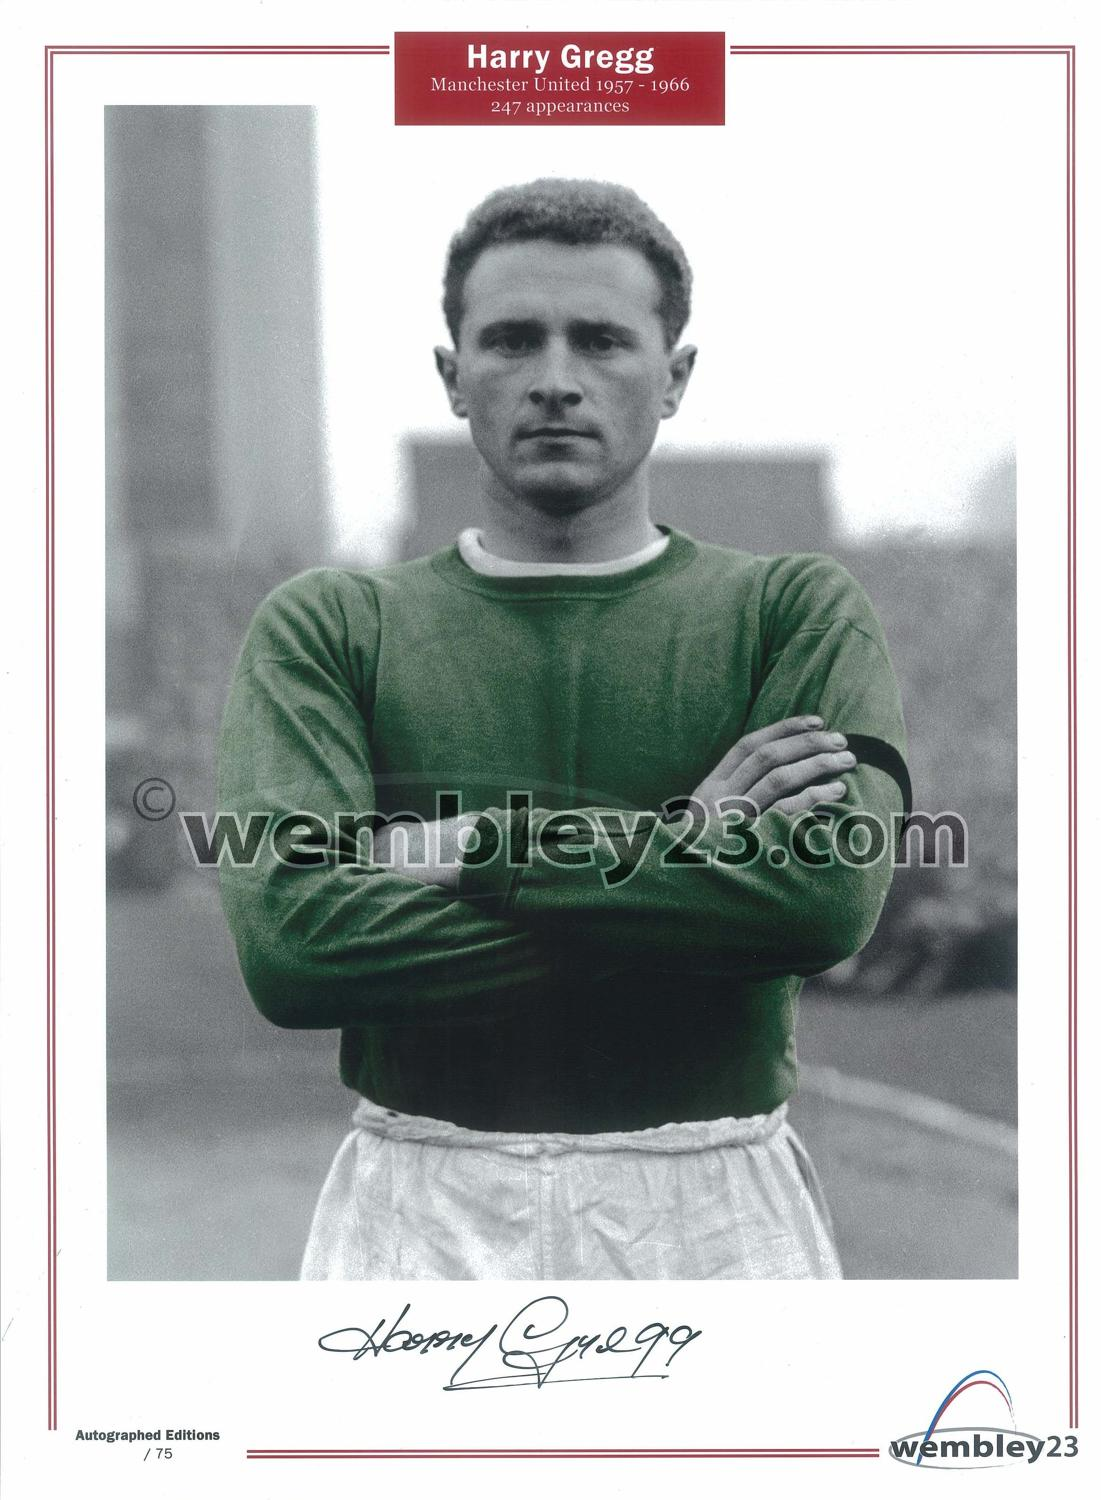 Harry Gregg Manchester United